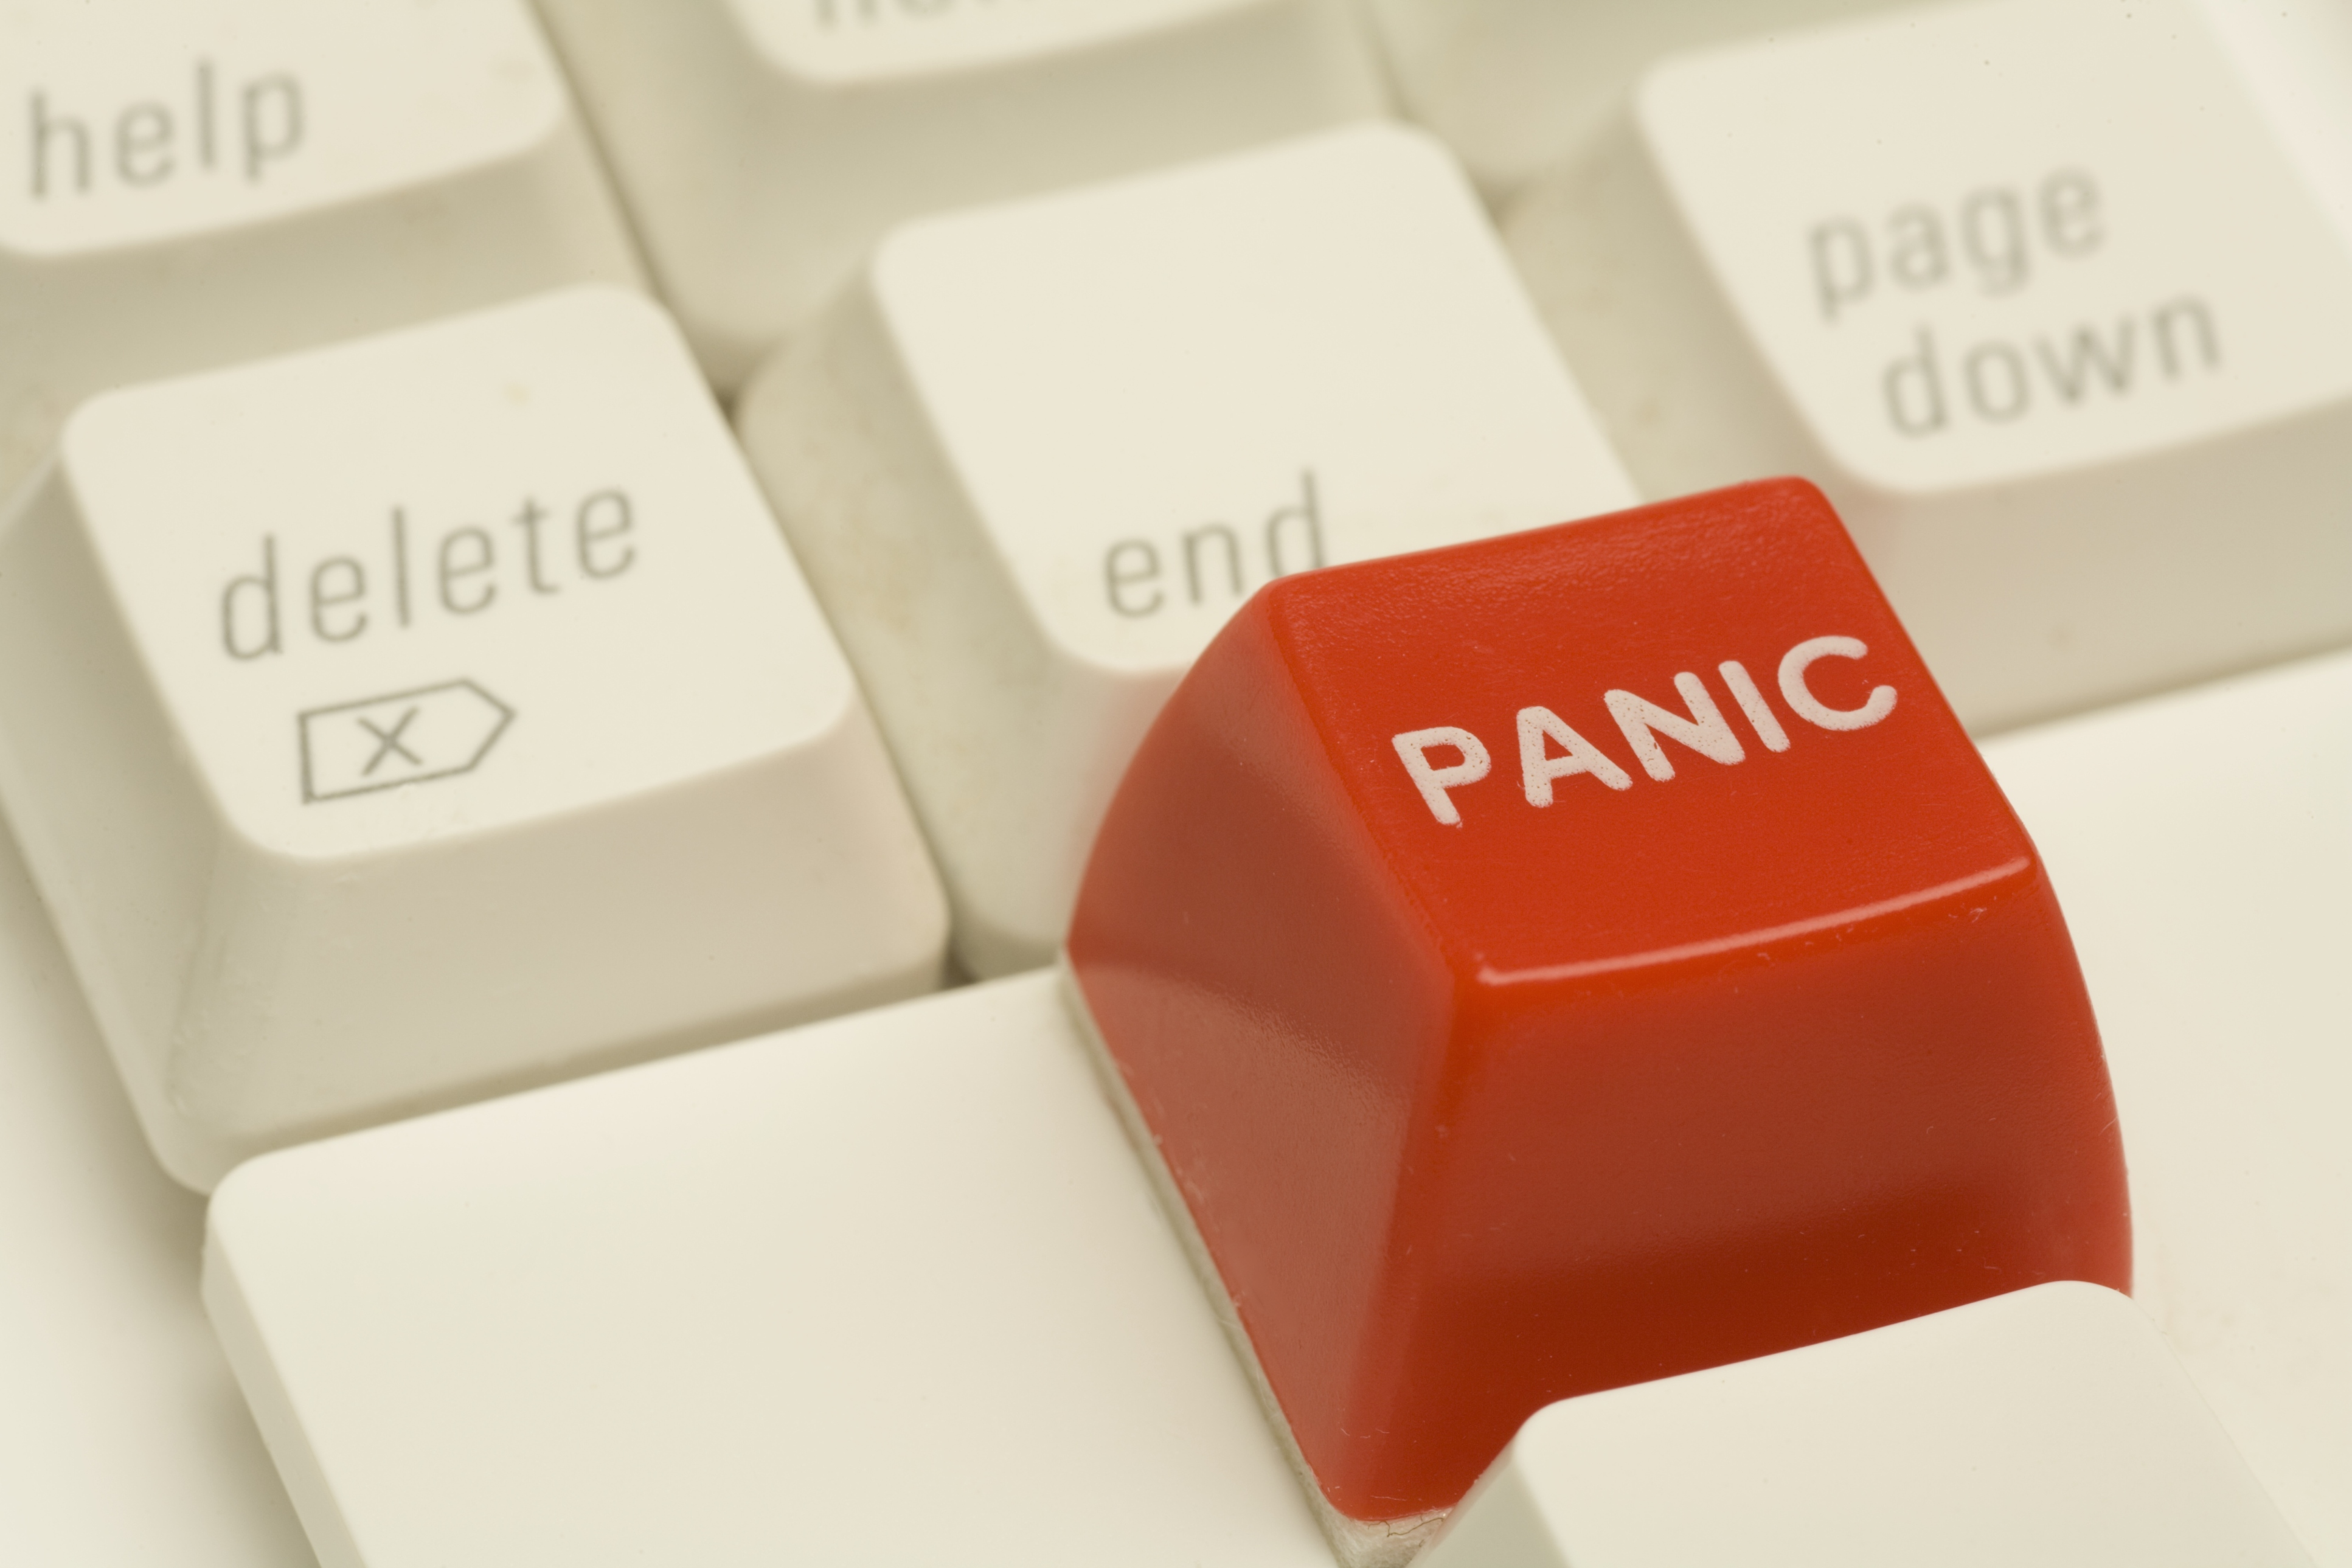 Panic button on computer keyboard